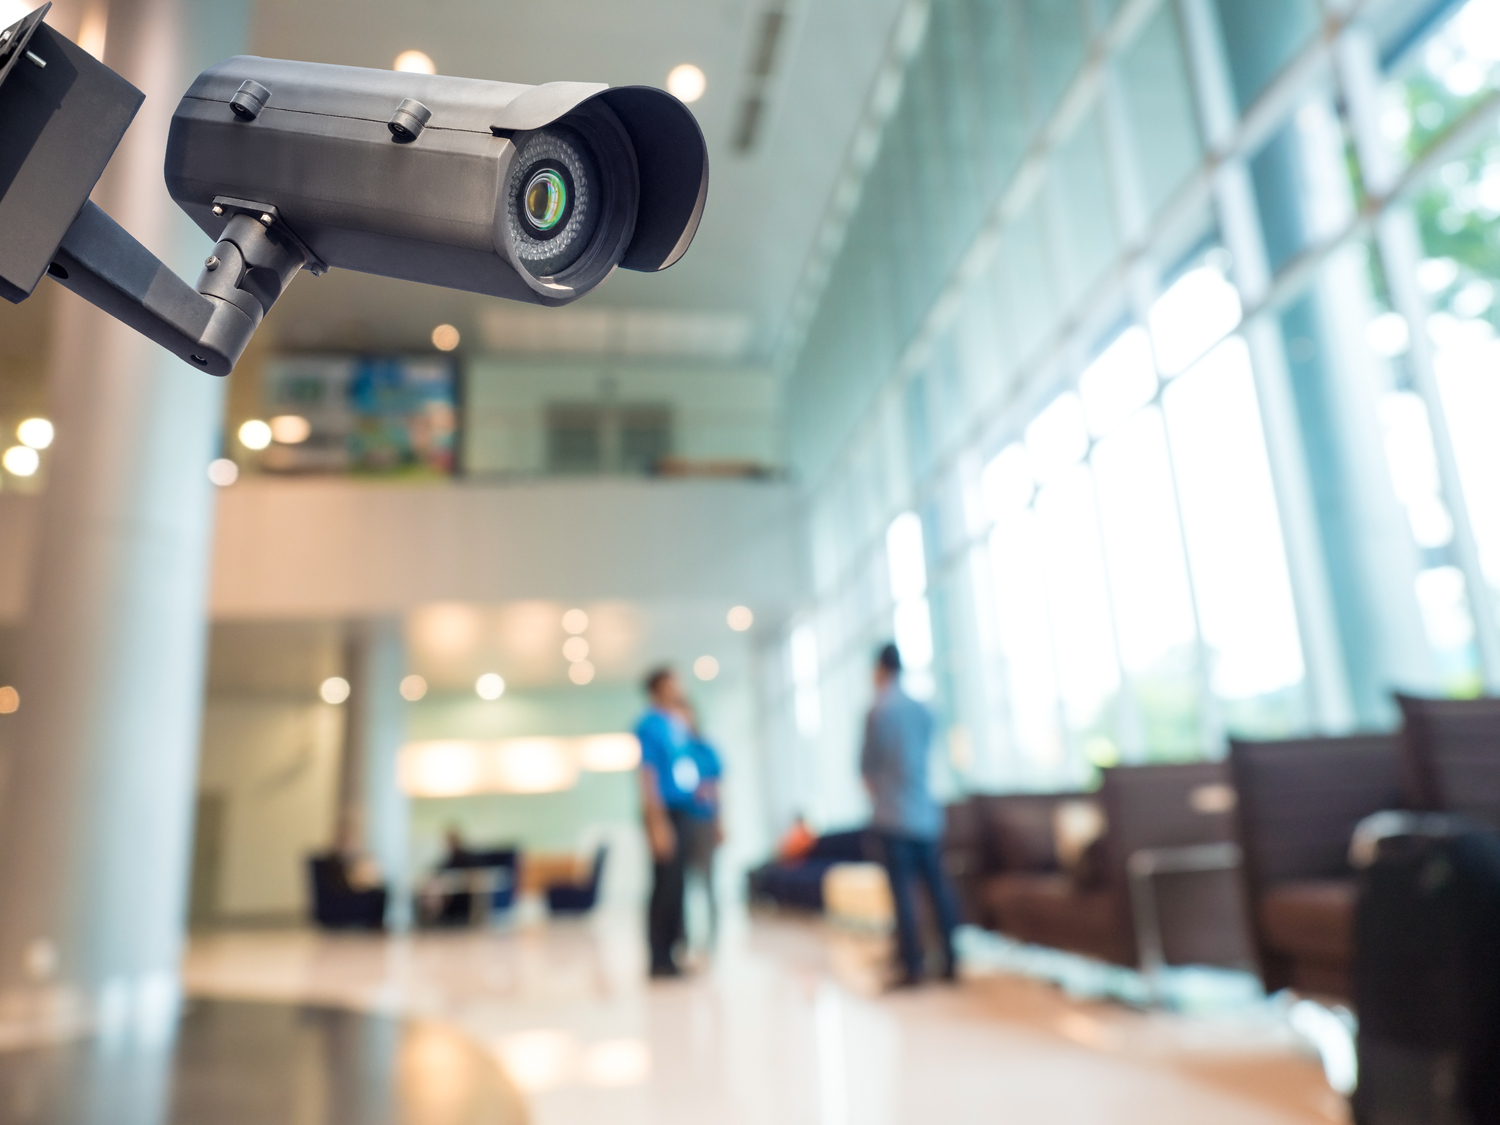 Security cameras have far more uses than protection.